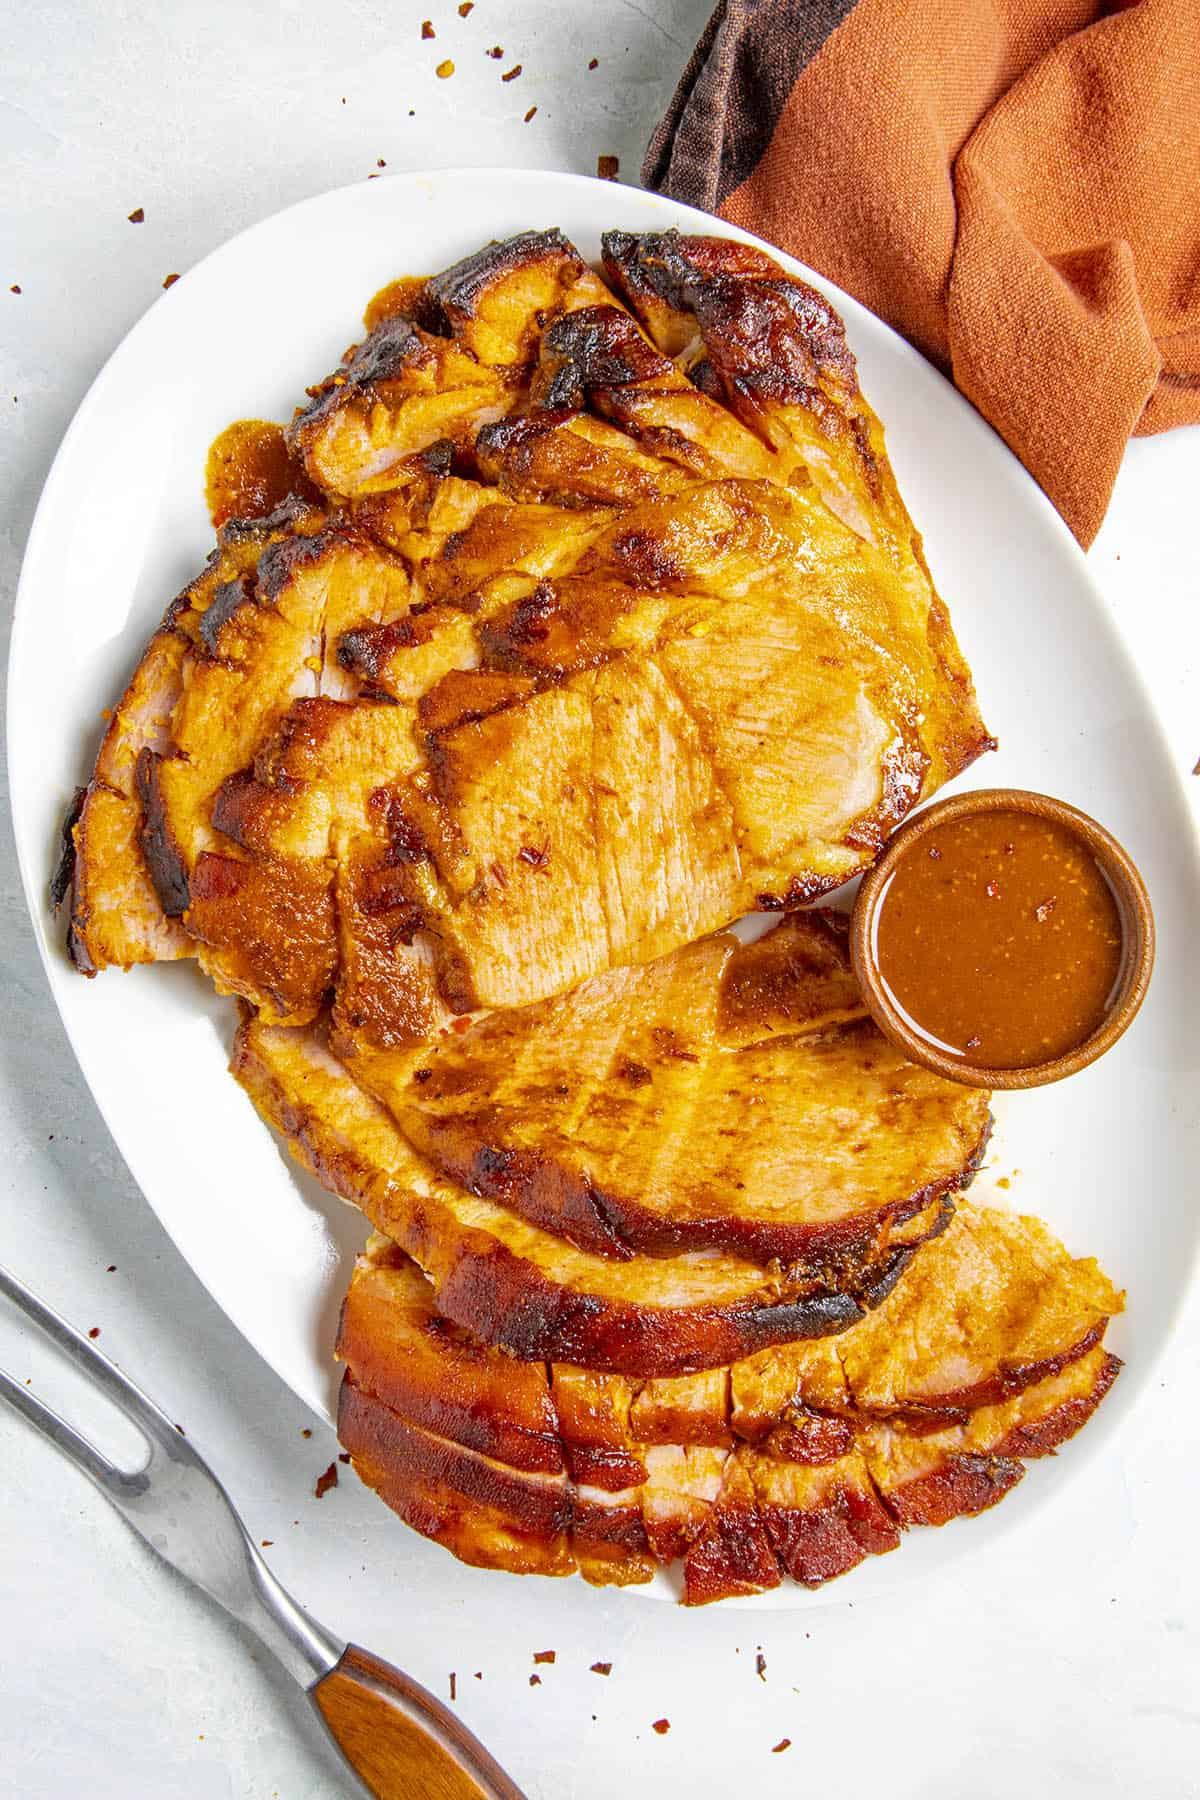 Baked Ham with Chipotle-Honey Glaze on a plate, ready to serve